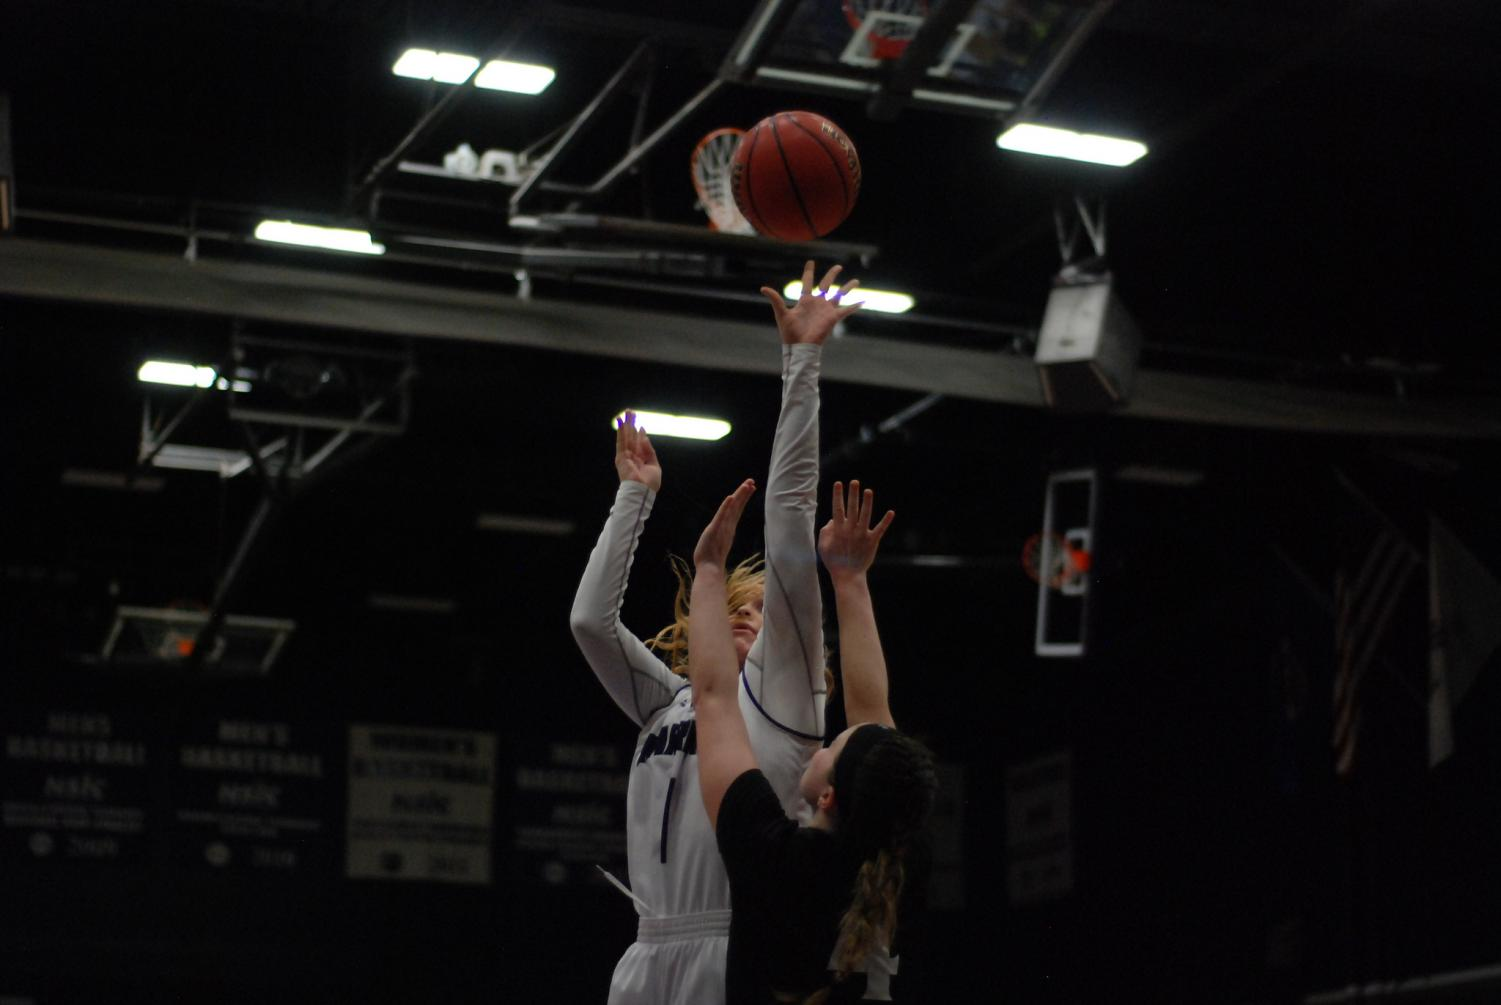 Junior Gabie Doud attempts to score against Minot State University during the first round of the NSIC Tournament on Wednesday, Feb. 27 in the McCown Gymnasium. The Warriors won against the Beavers, moving on to the next round where they ended the season with a loss against Minnesota State University Moorhead.